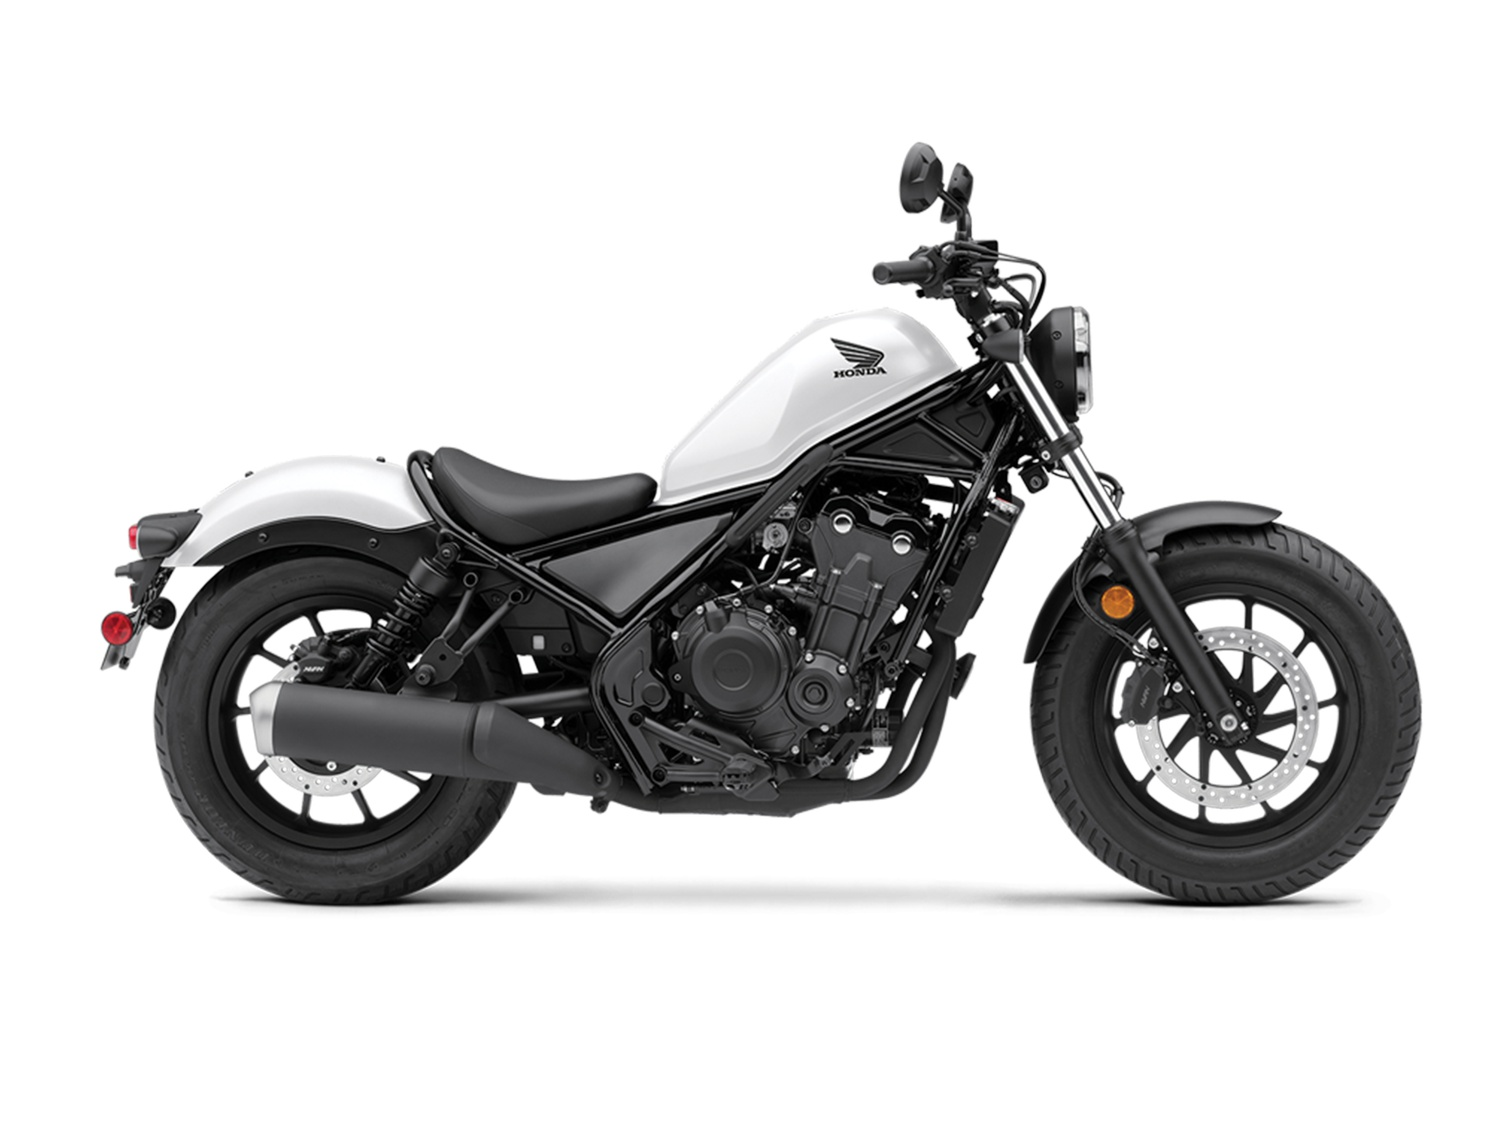 2021 Honda Rebel 500 Frais inclus+Taxes